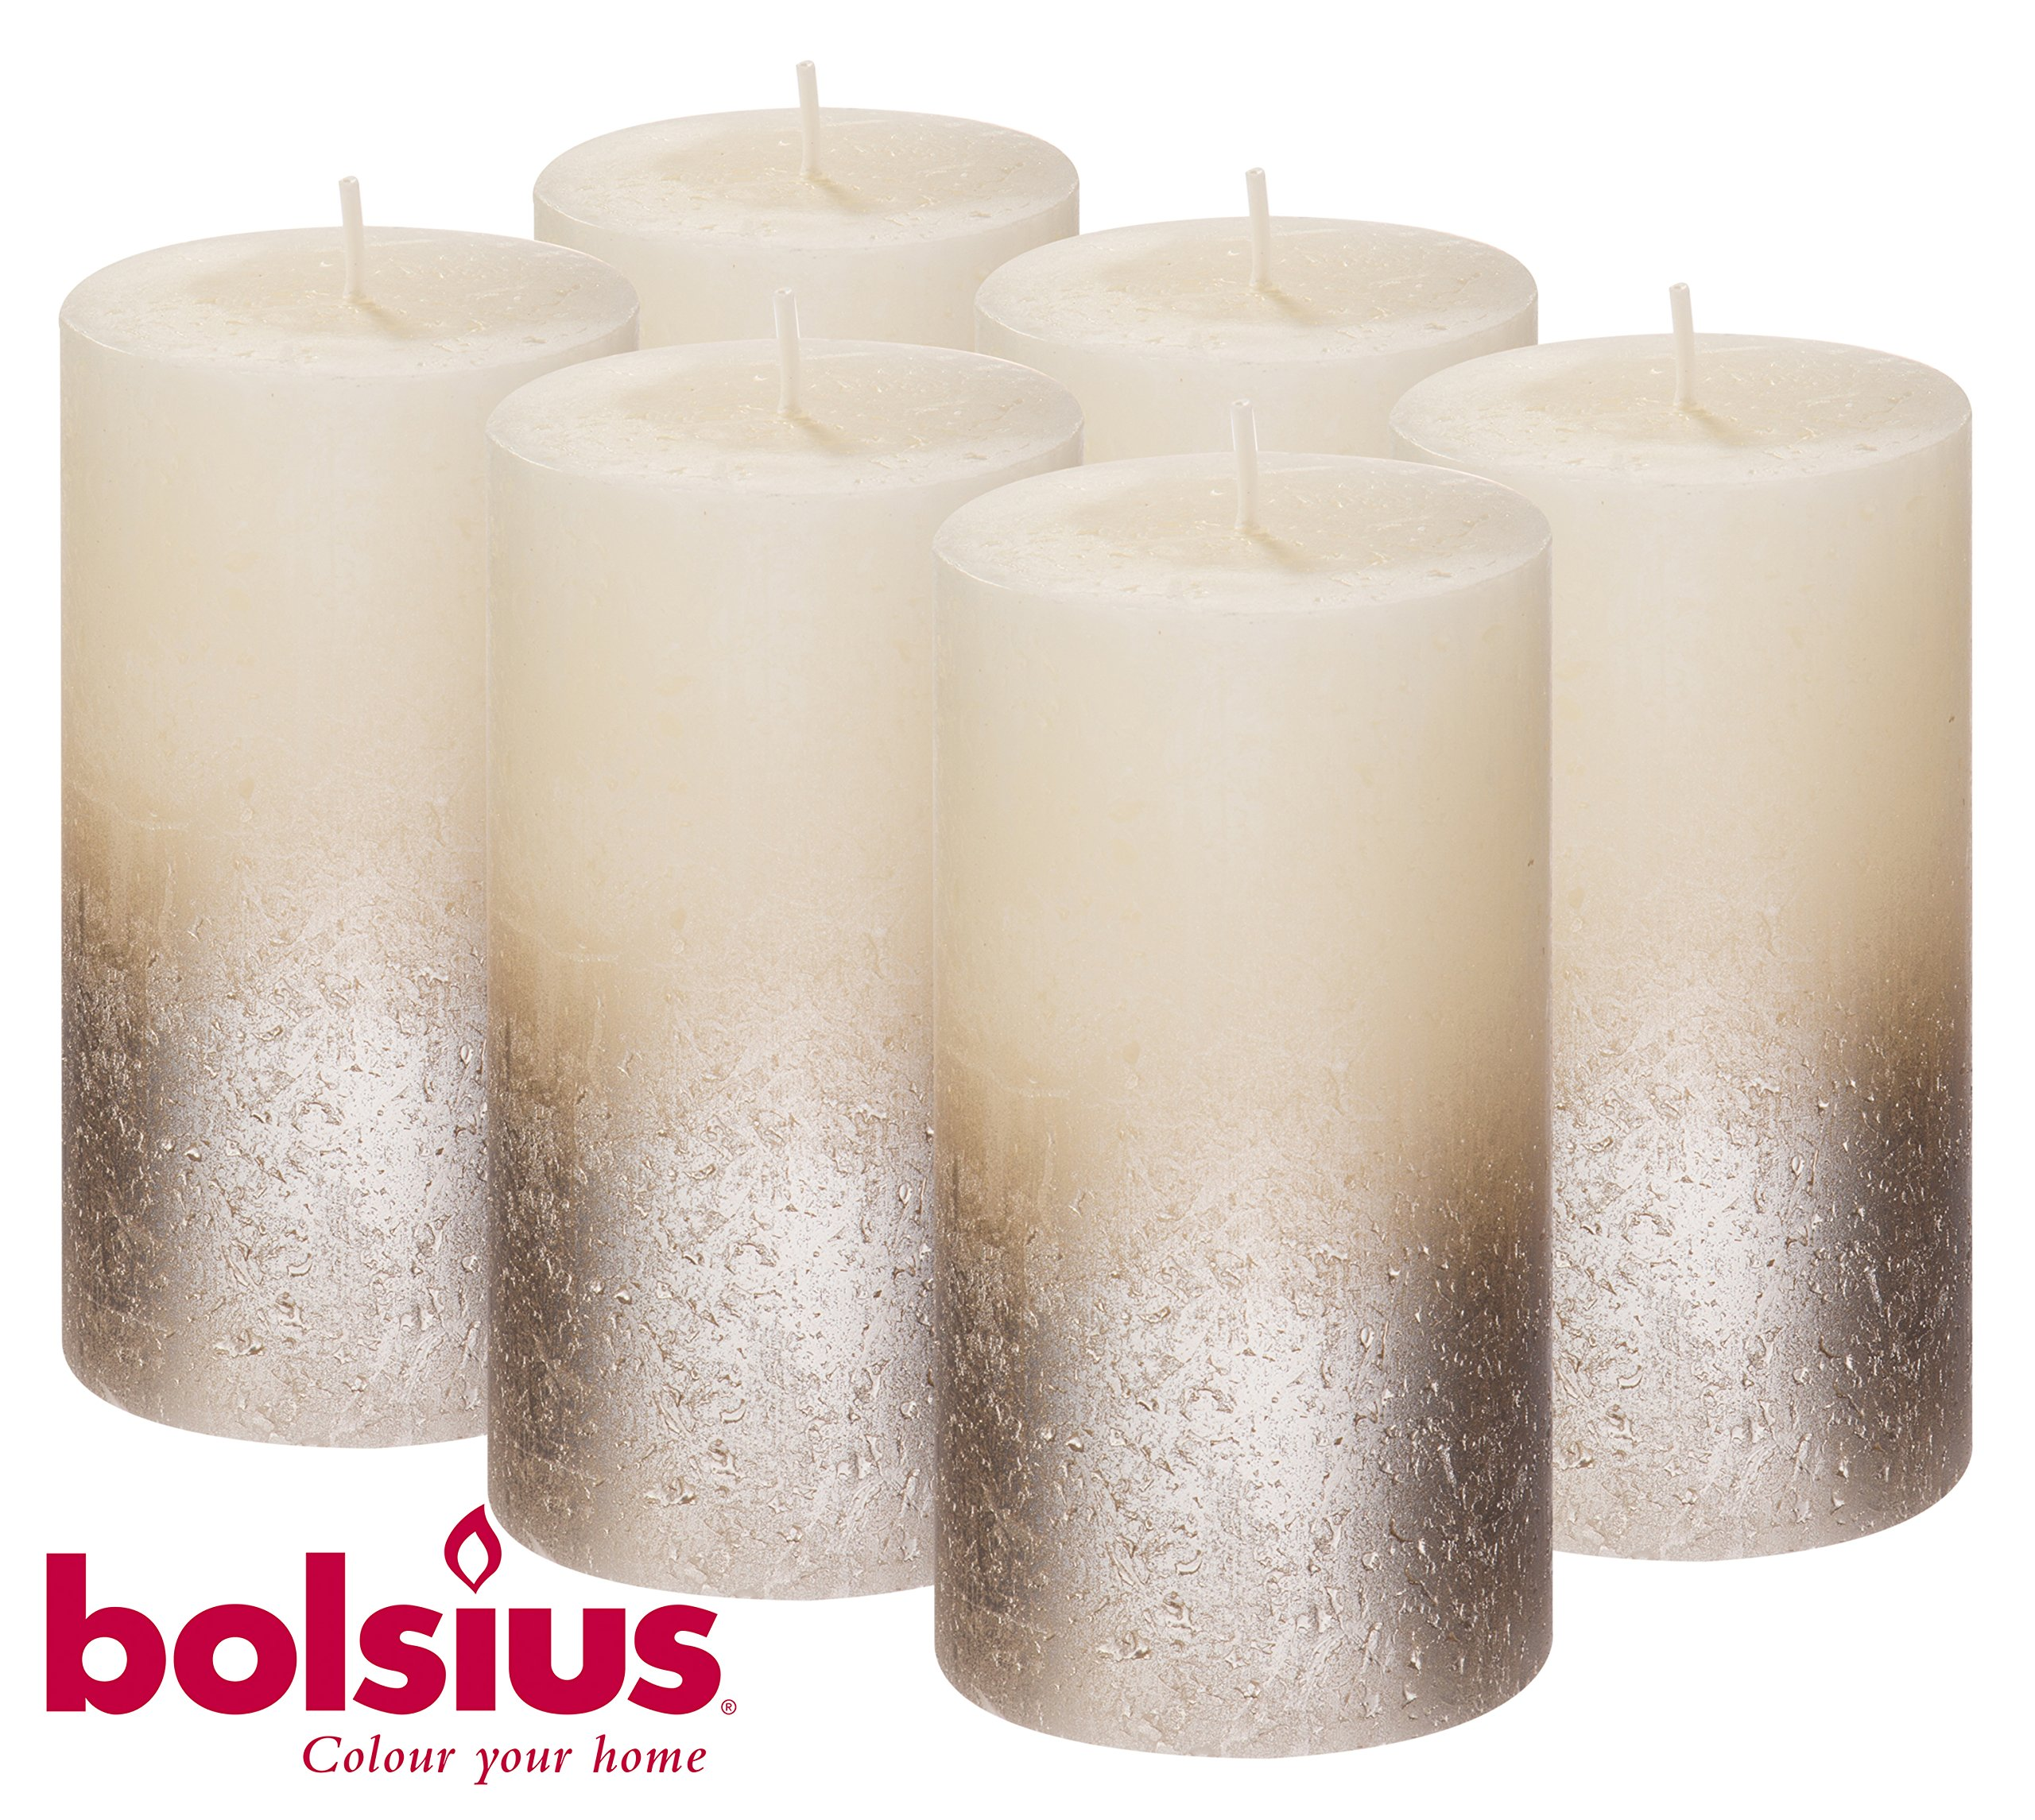 Bolsius SET OF 6 Rustic Metallic Unscented Pillar Candles With Silver Coated Bottom 130/68mm (Aprox. 5 X 2.75 Inches) (Ivory/Silver)